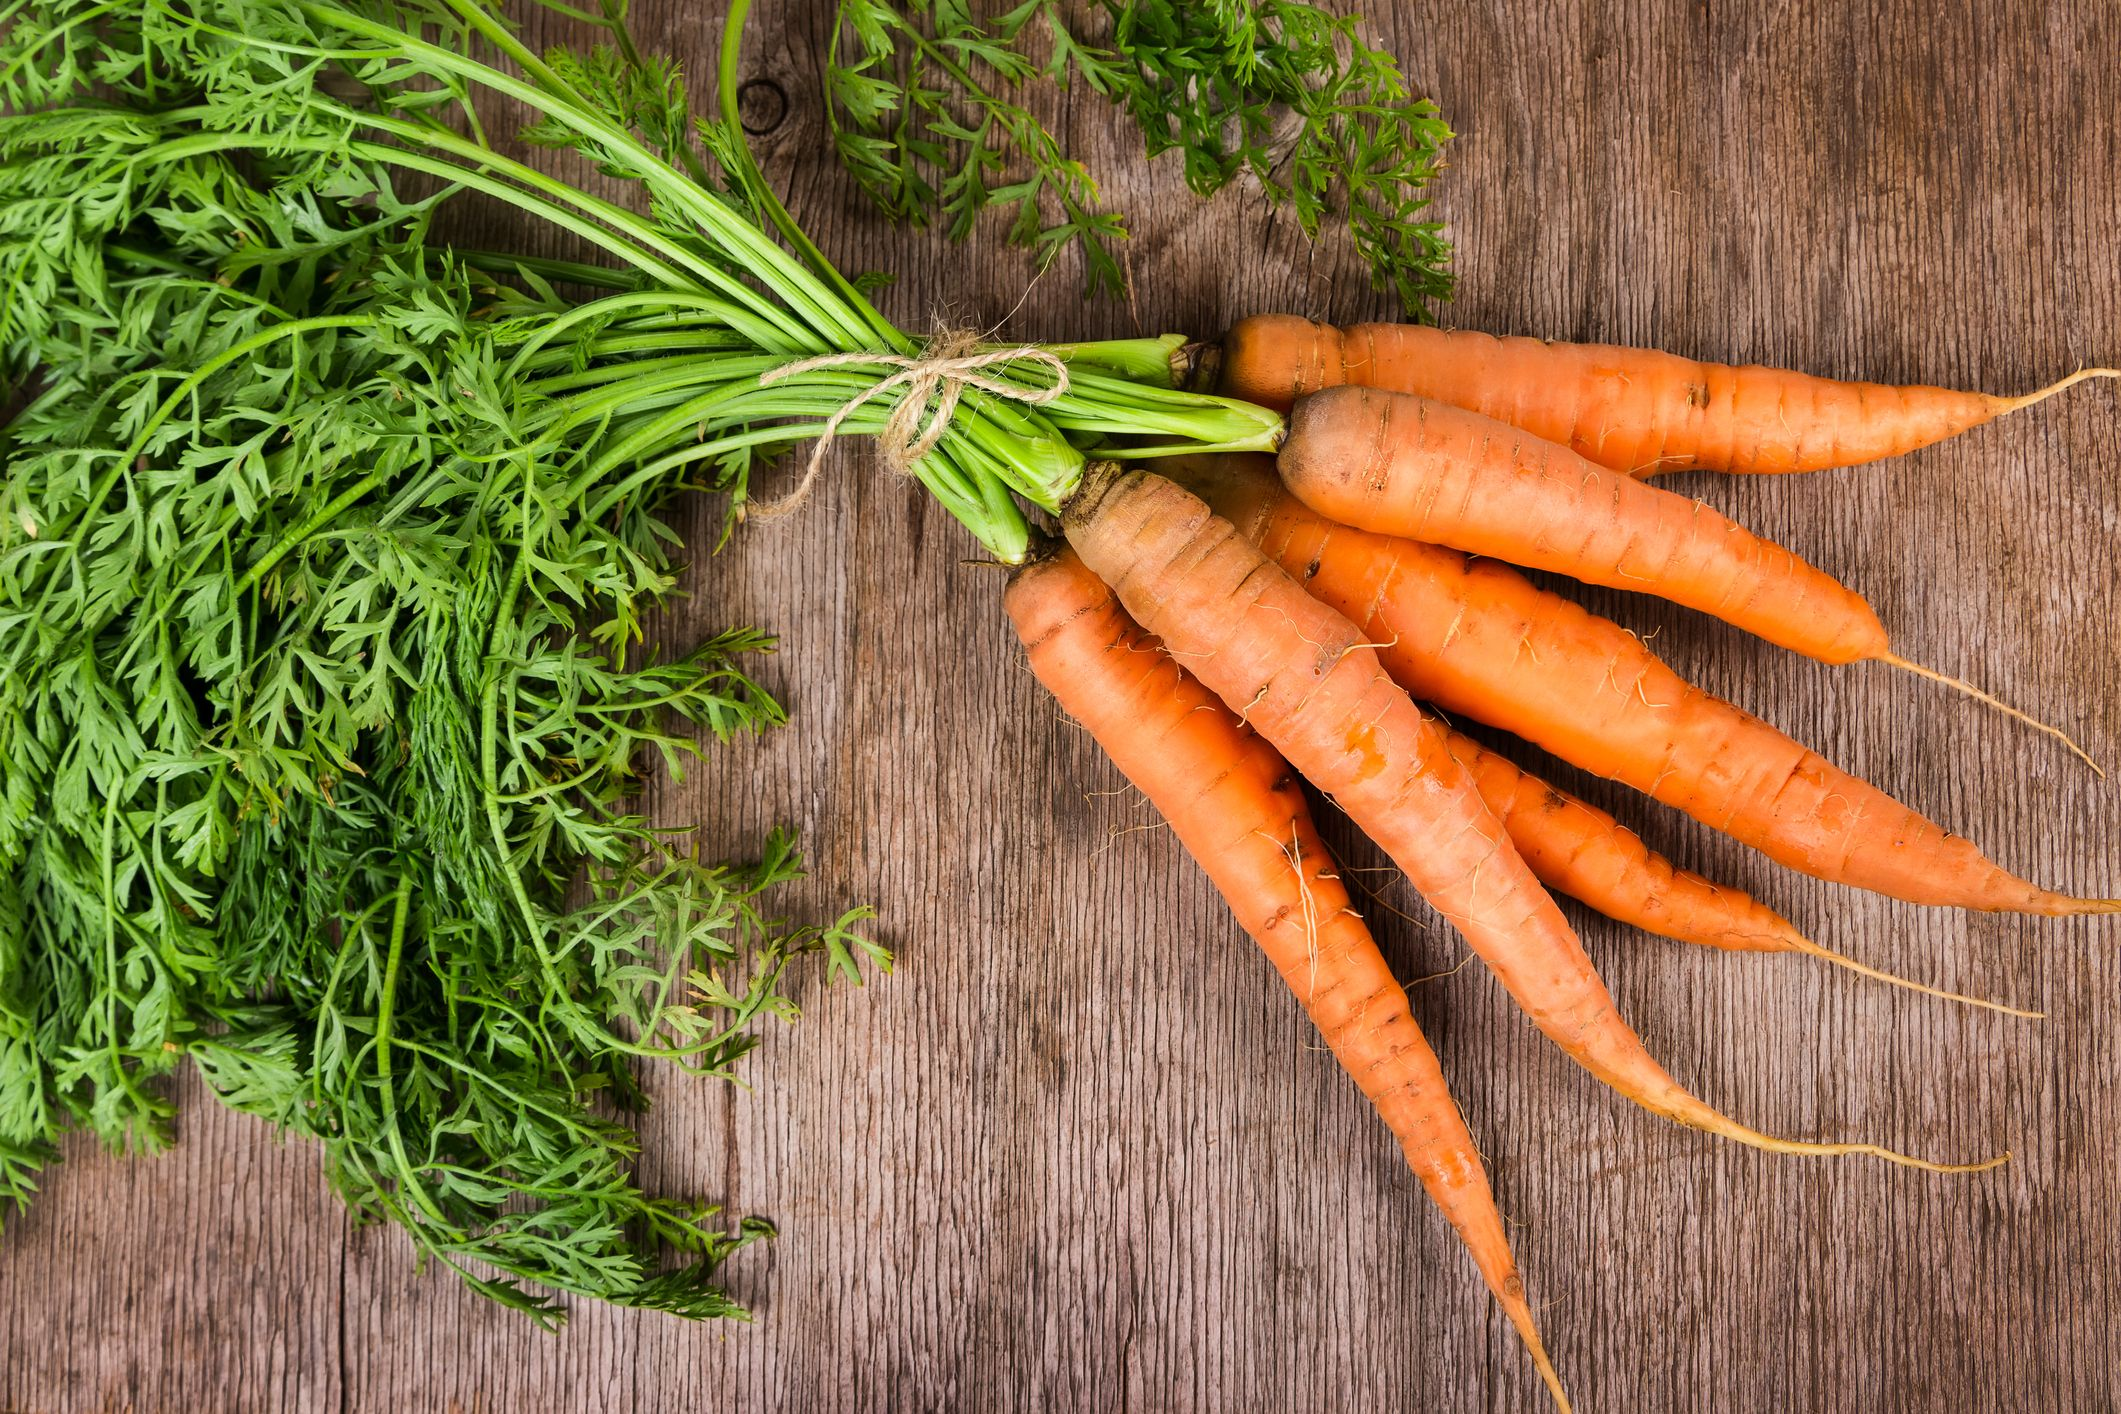 carrot nutrition facts - health benefits of carrots